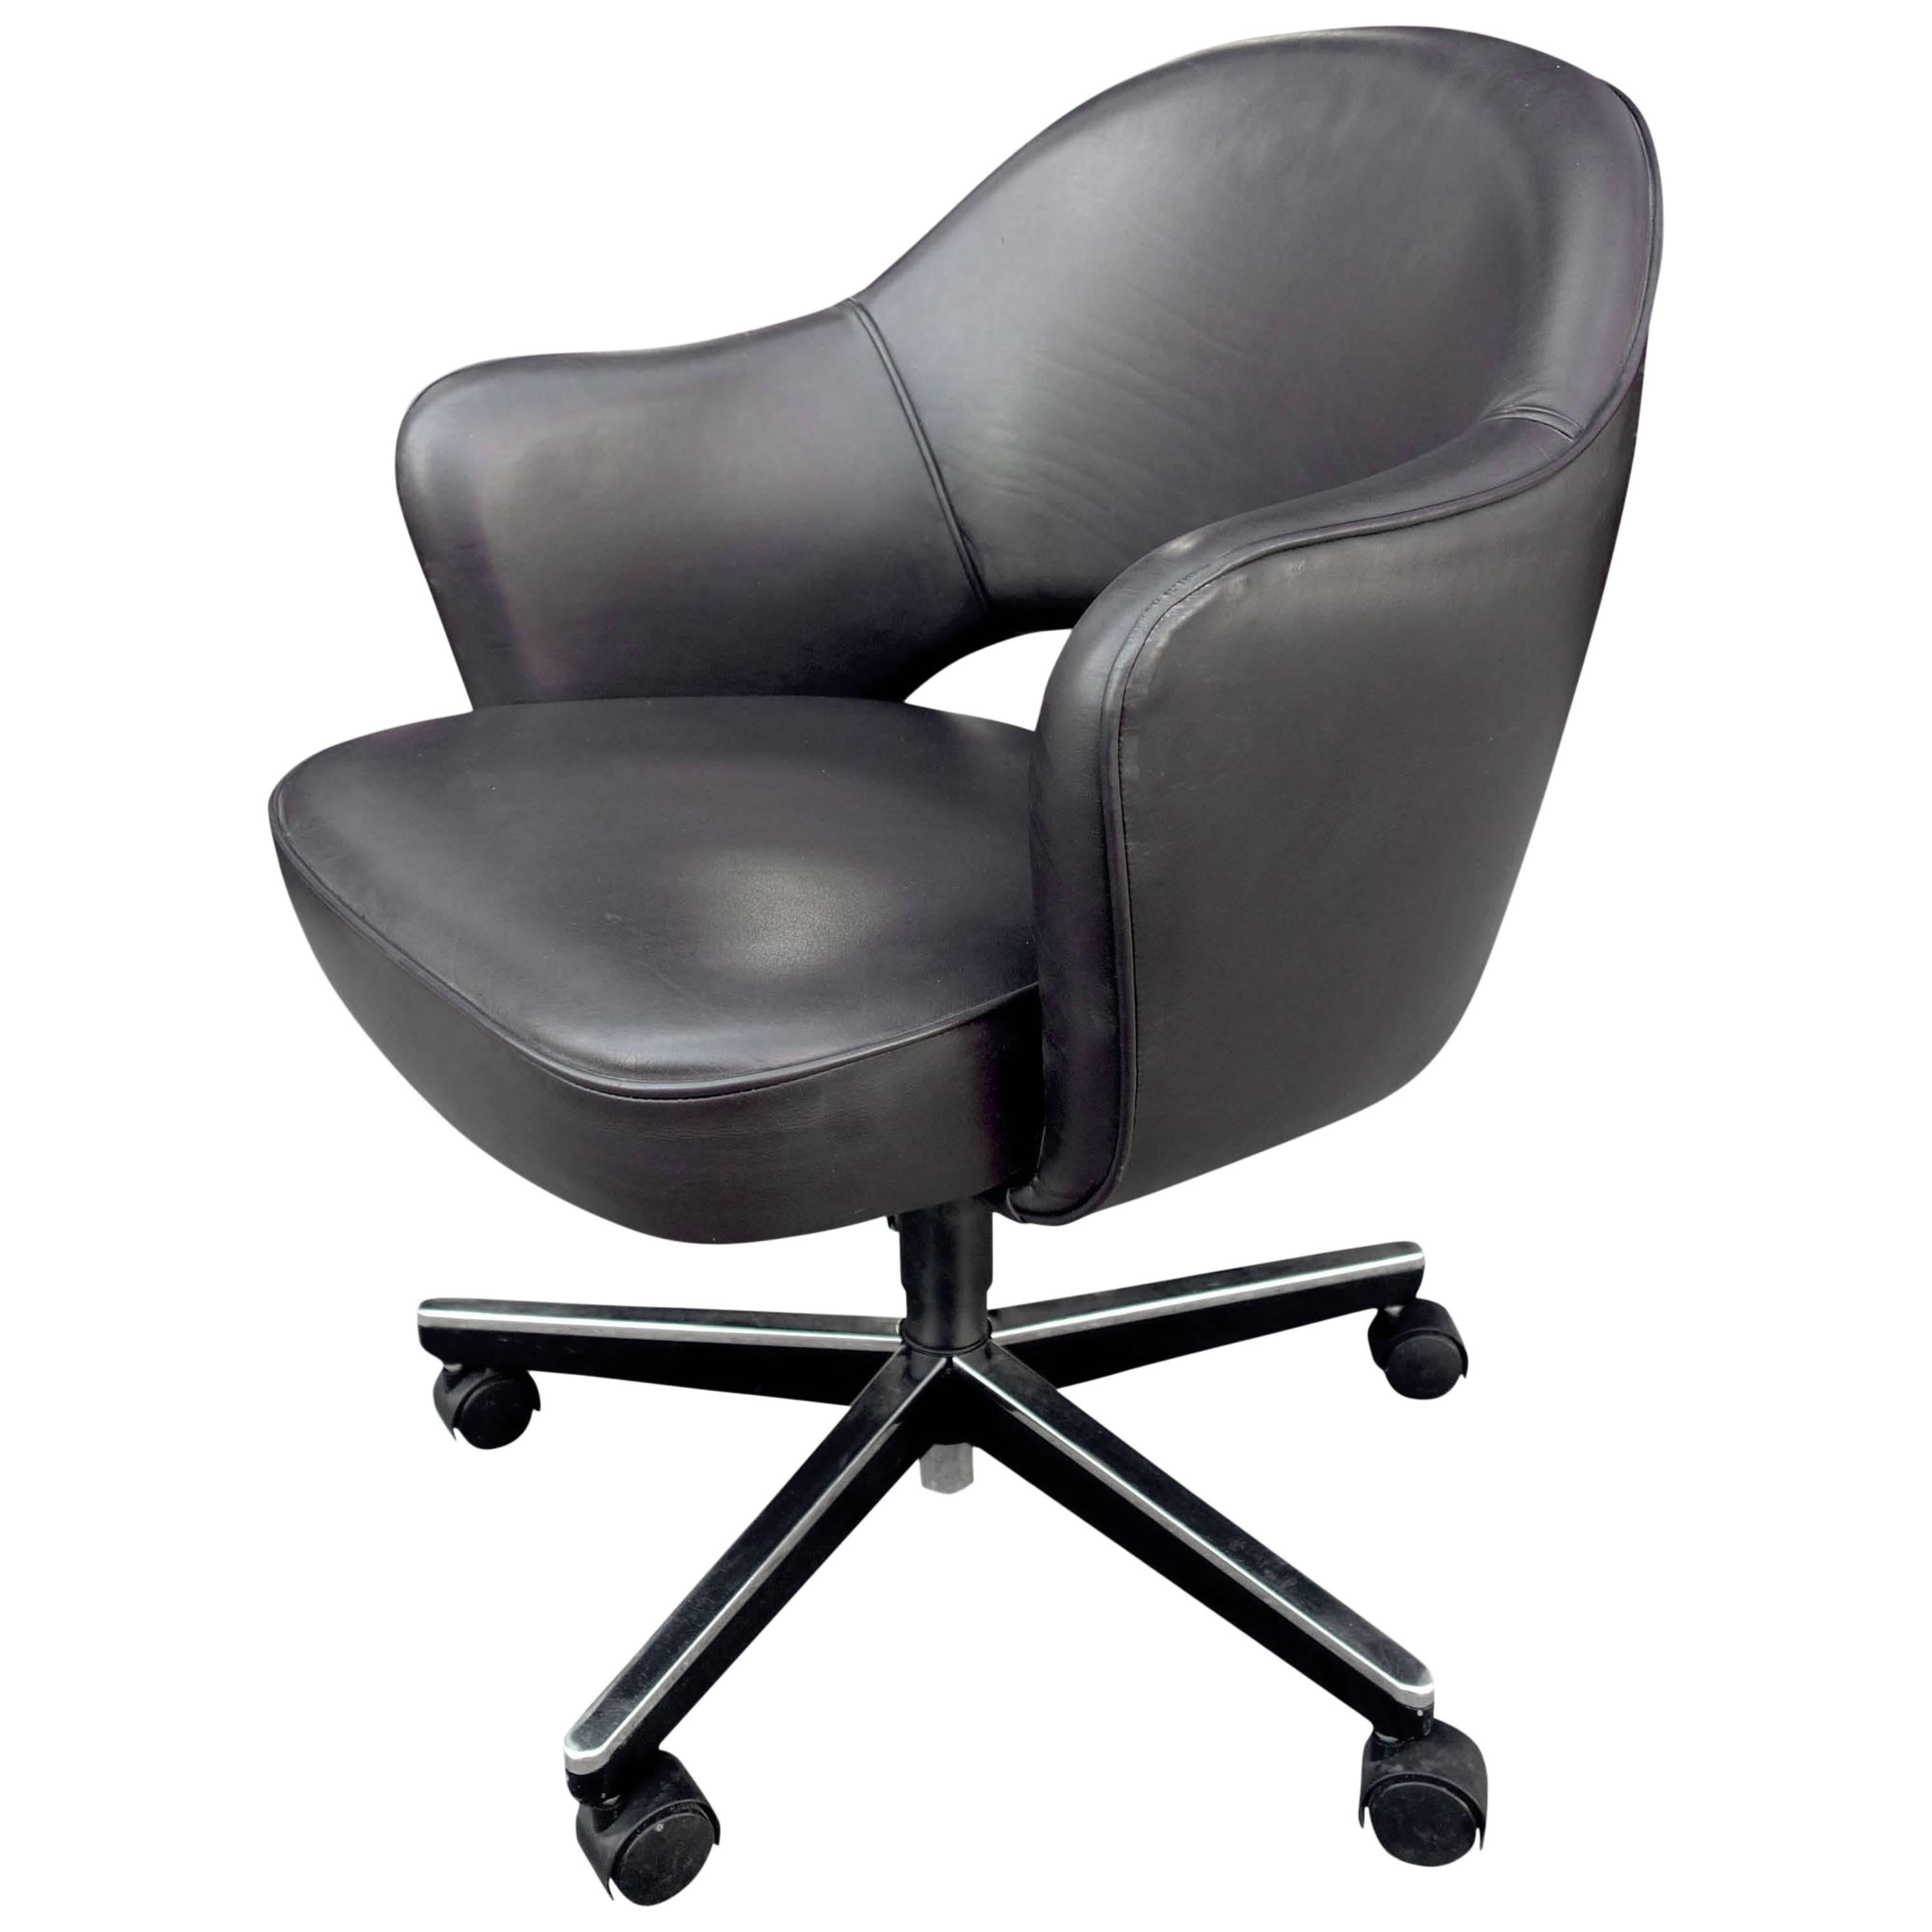 Delightful Midcentury Saarinen Executive Armchair For Knoll In Leather For Sale